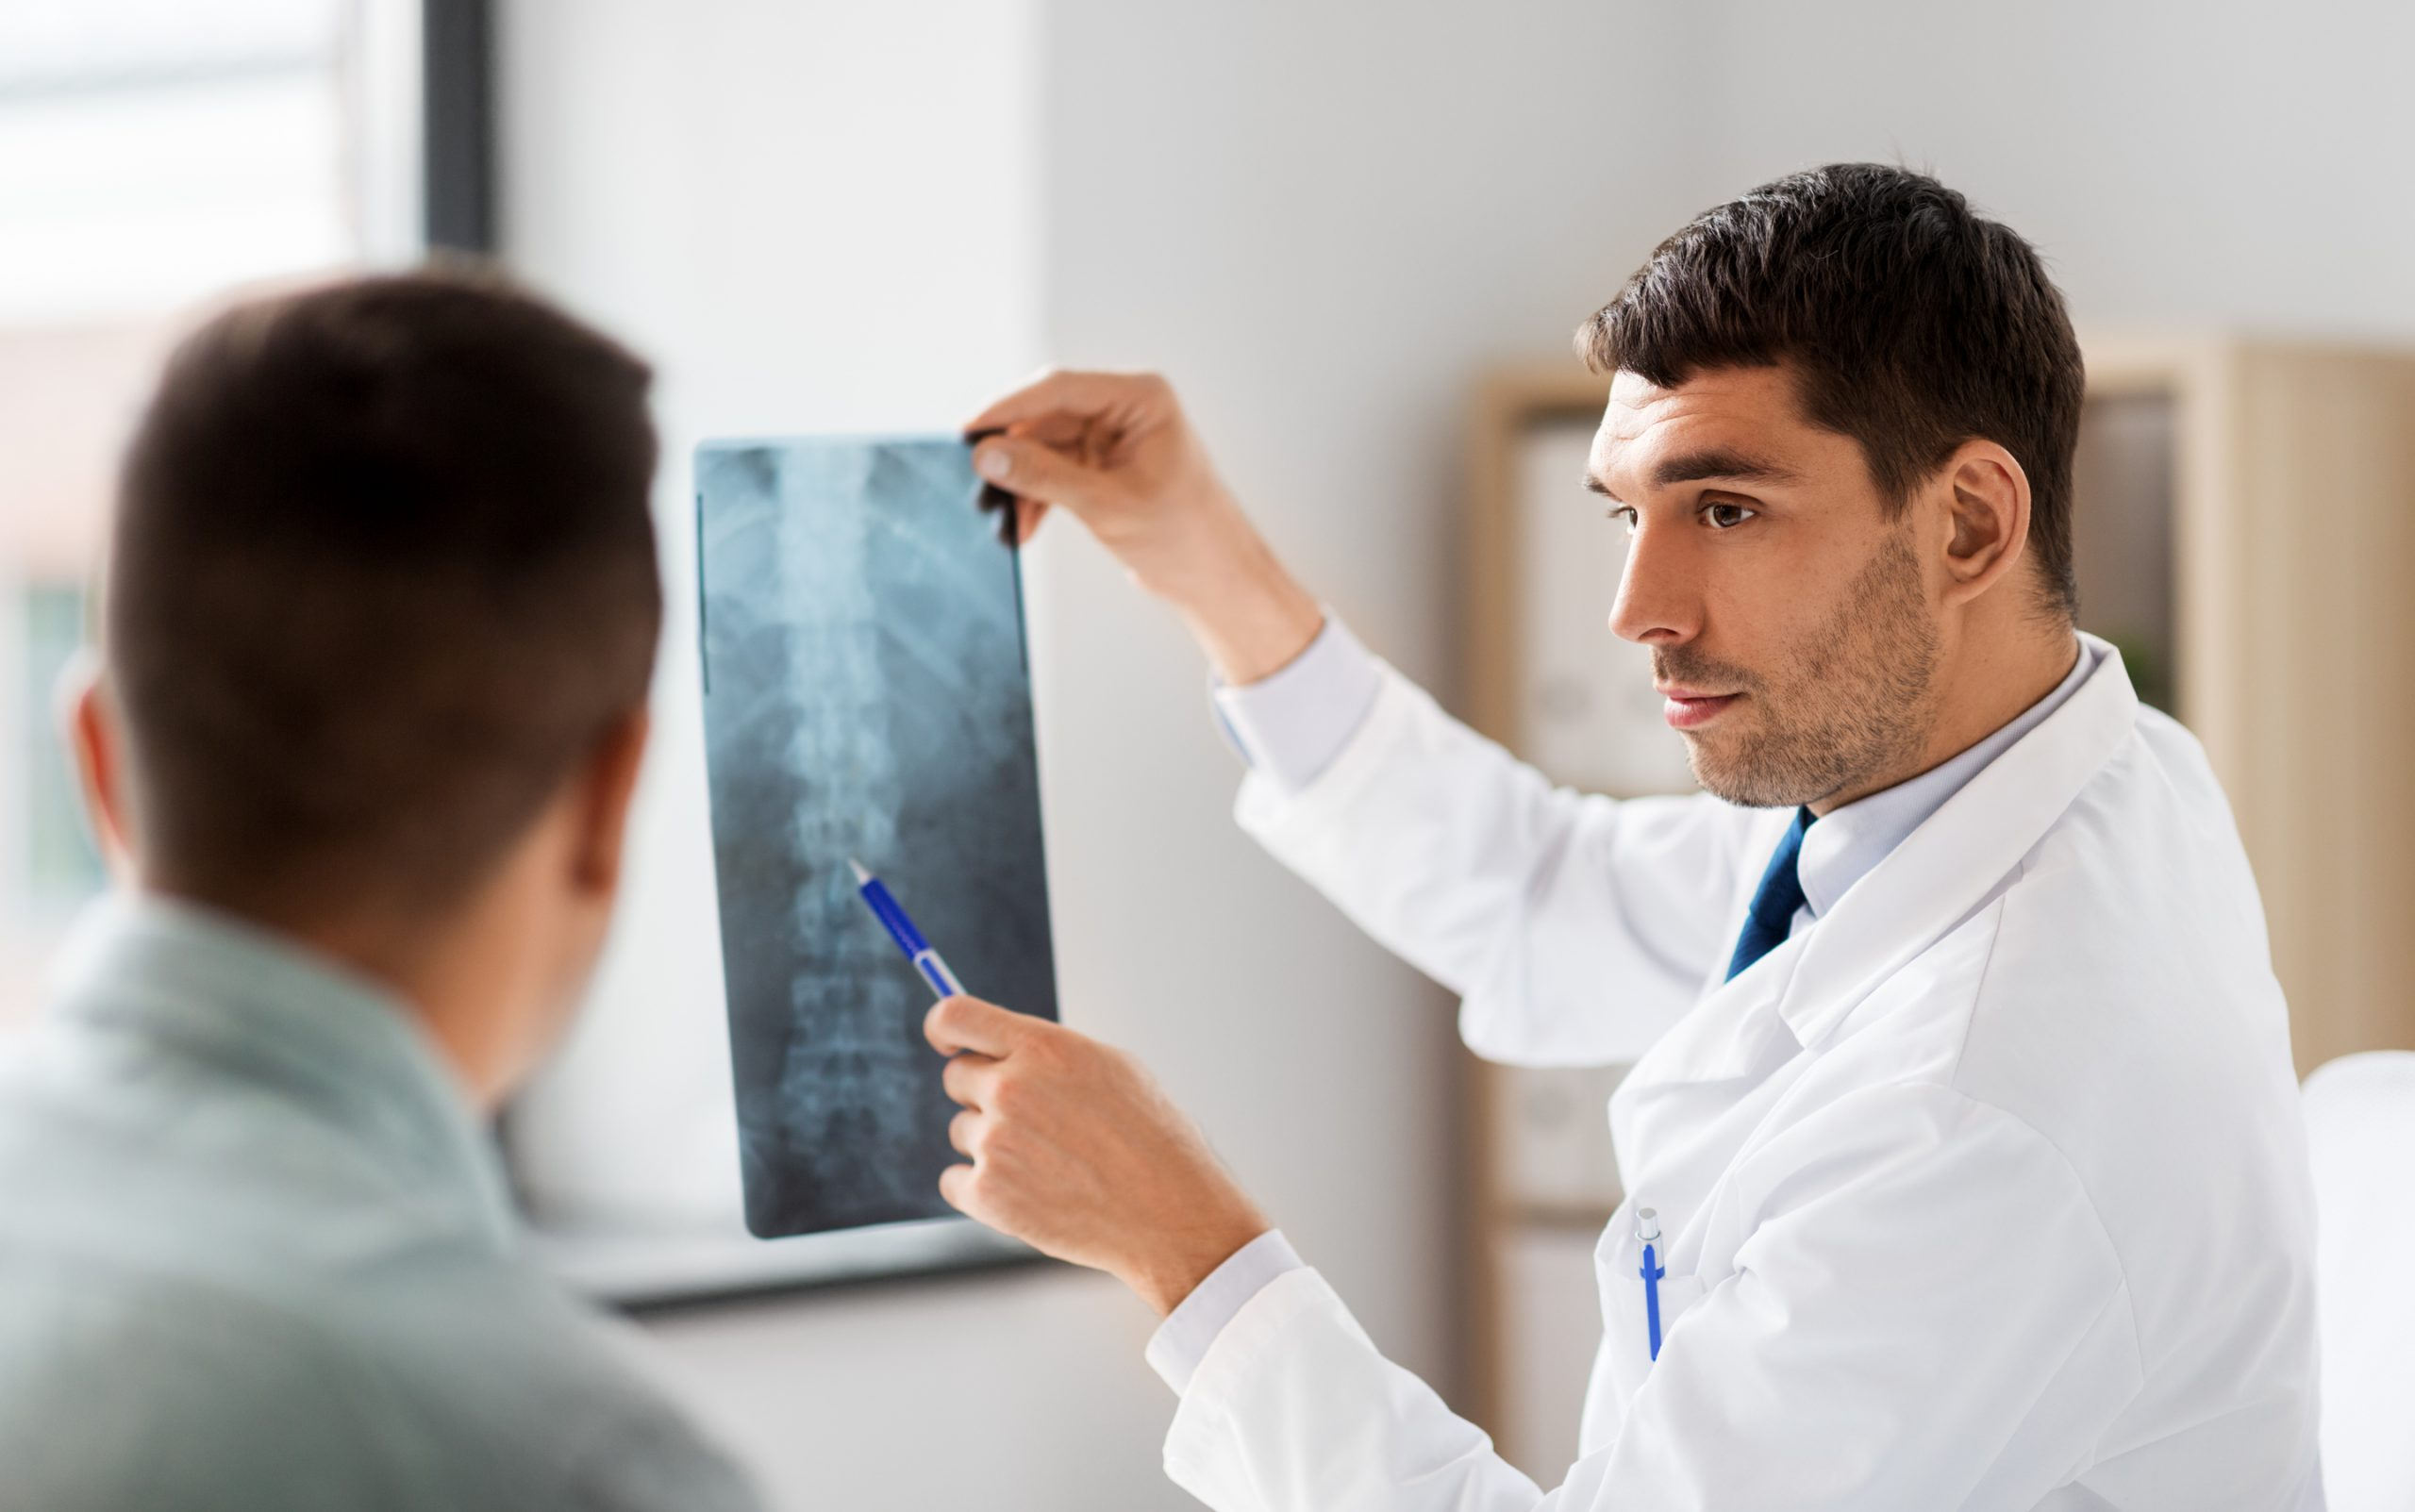 Chiropractor Evaluating x-ray